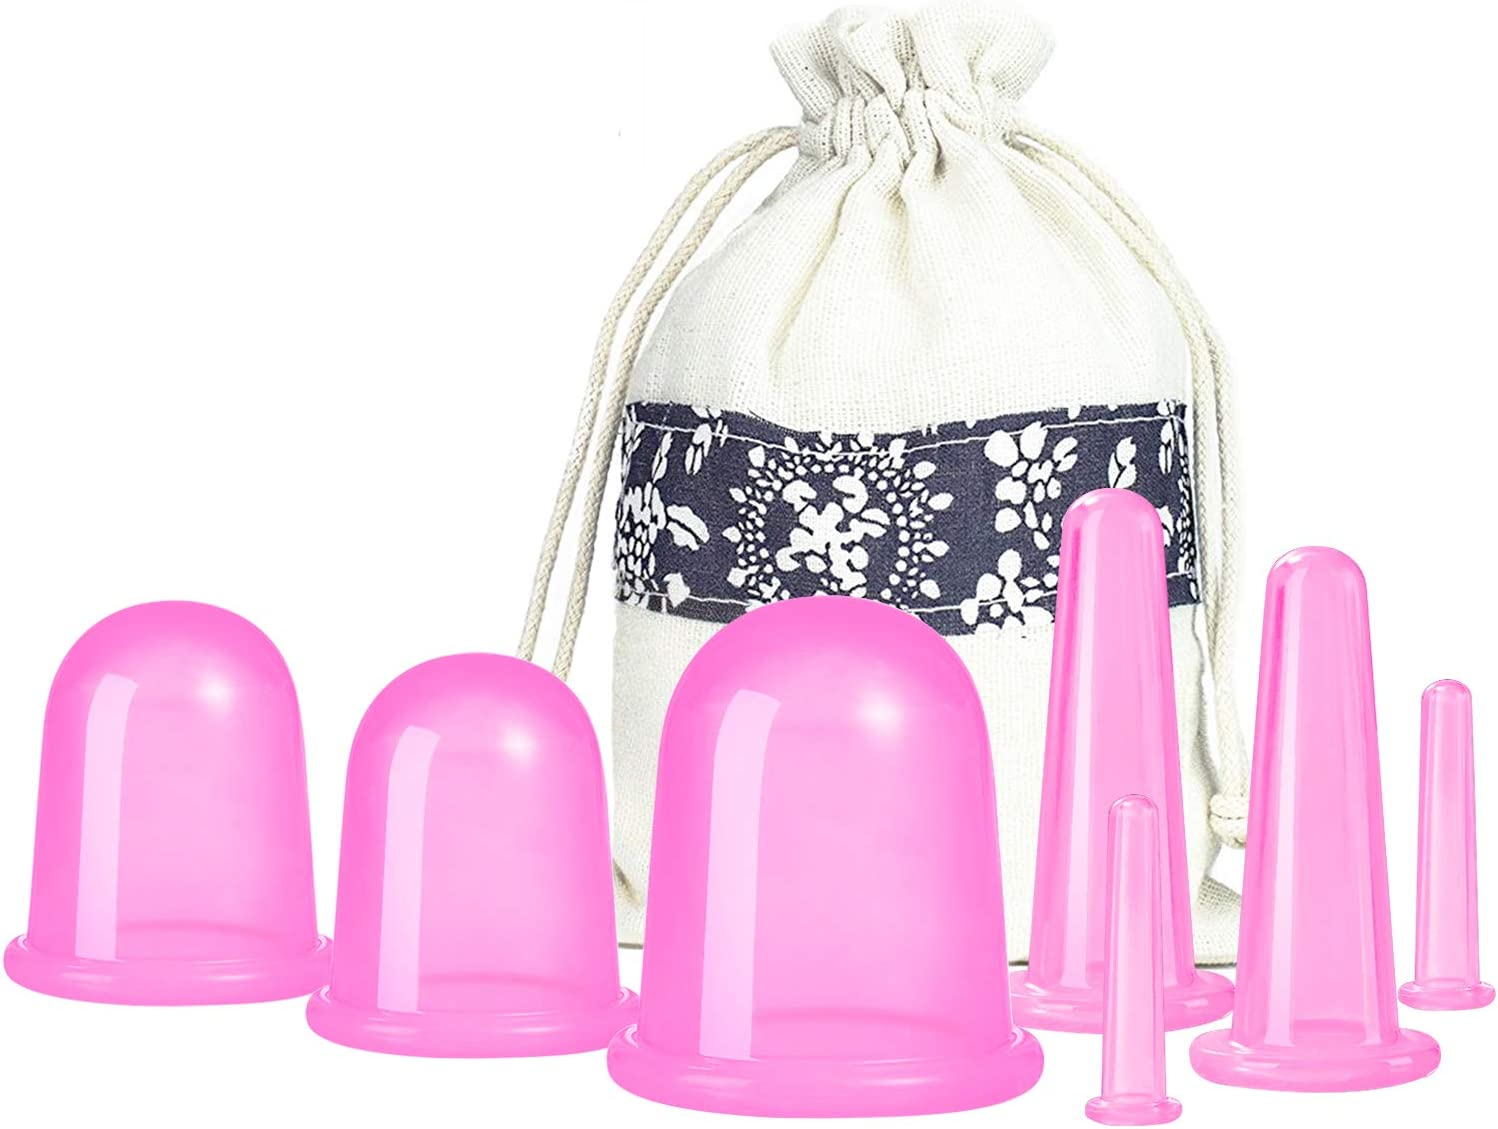 Cupping Therapy Sets 7Pcs Silicone Anti Cellulite Cup by 500-miles